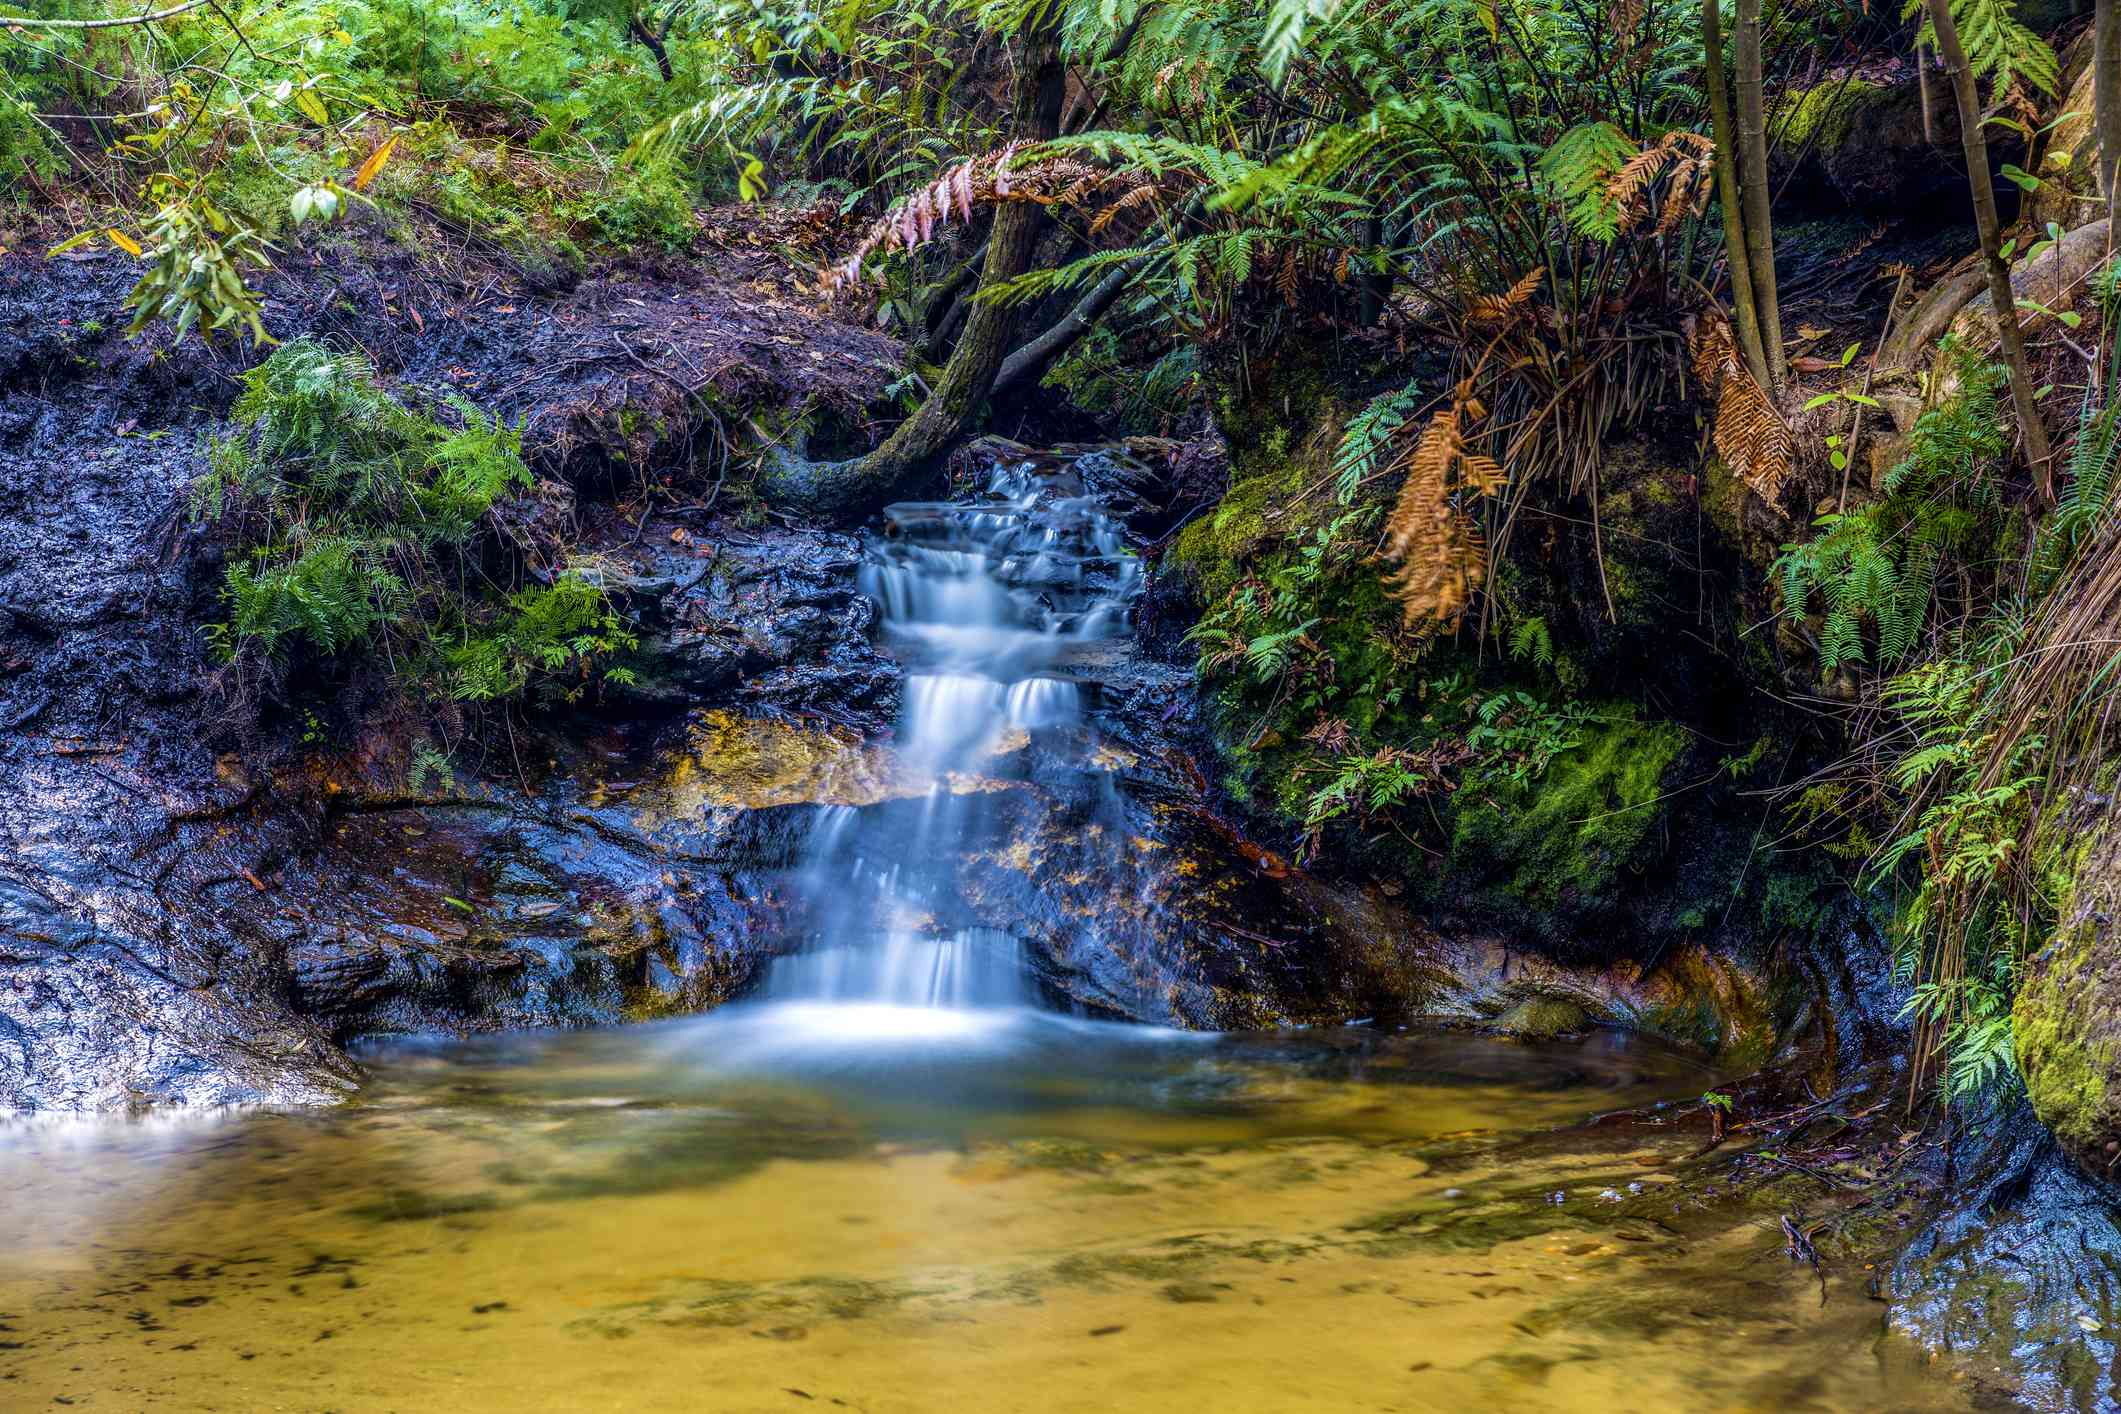 Small forest waterfall with a brown pond beneath it